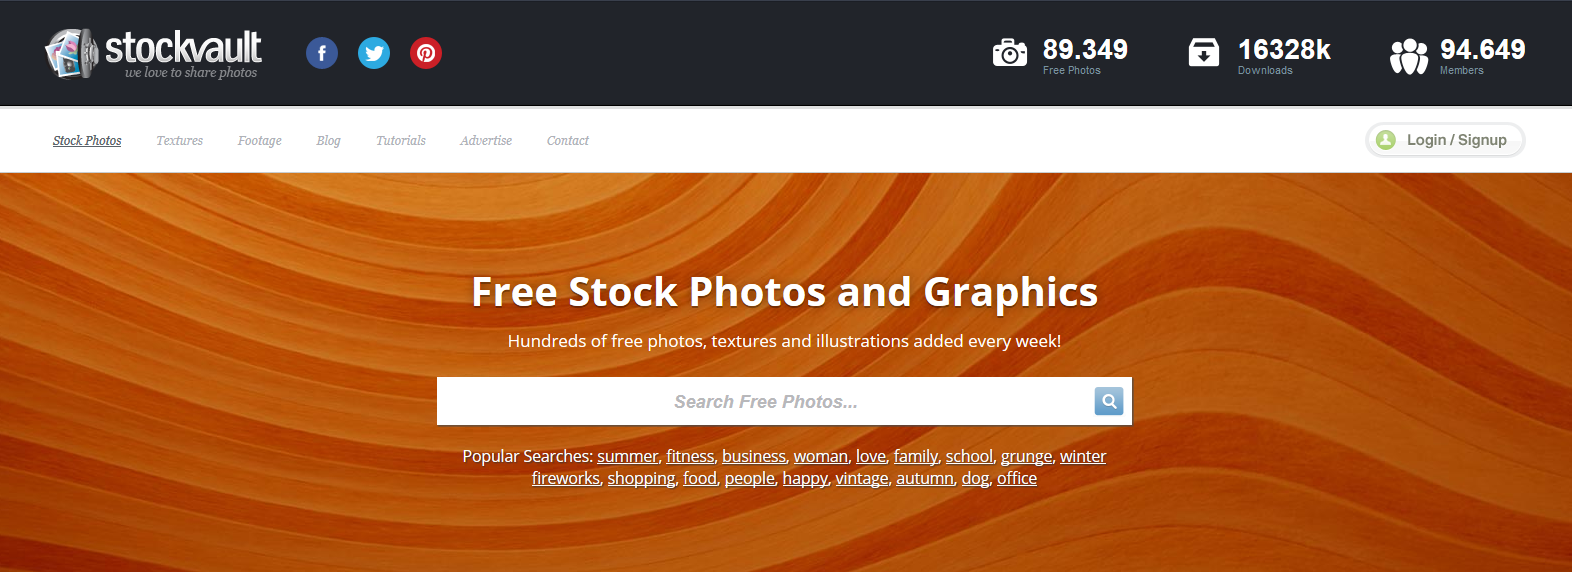 Free Stock Photos and Graphics